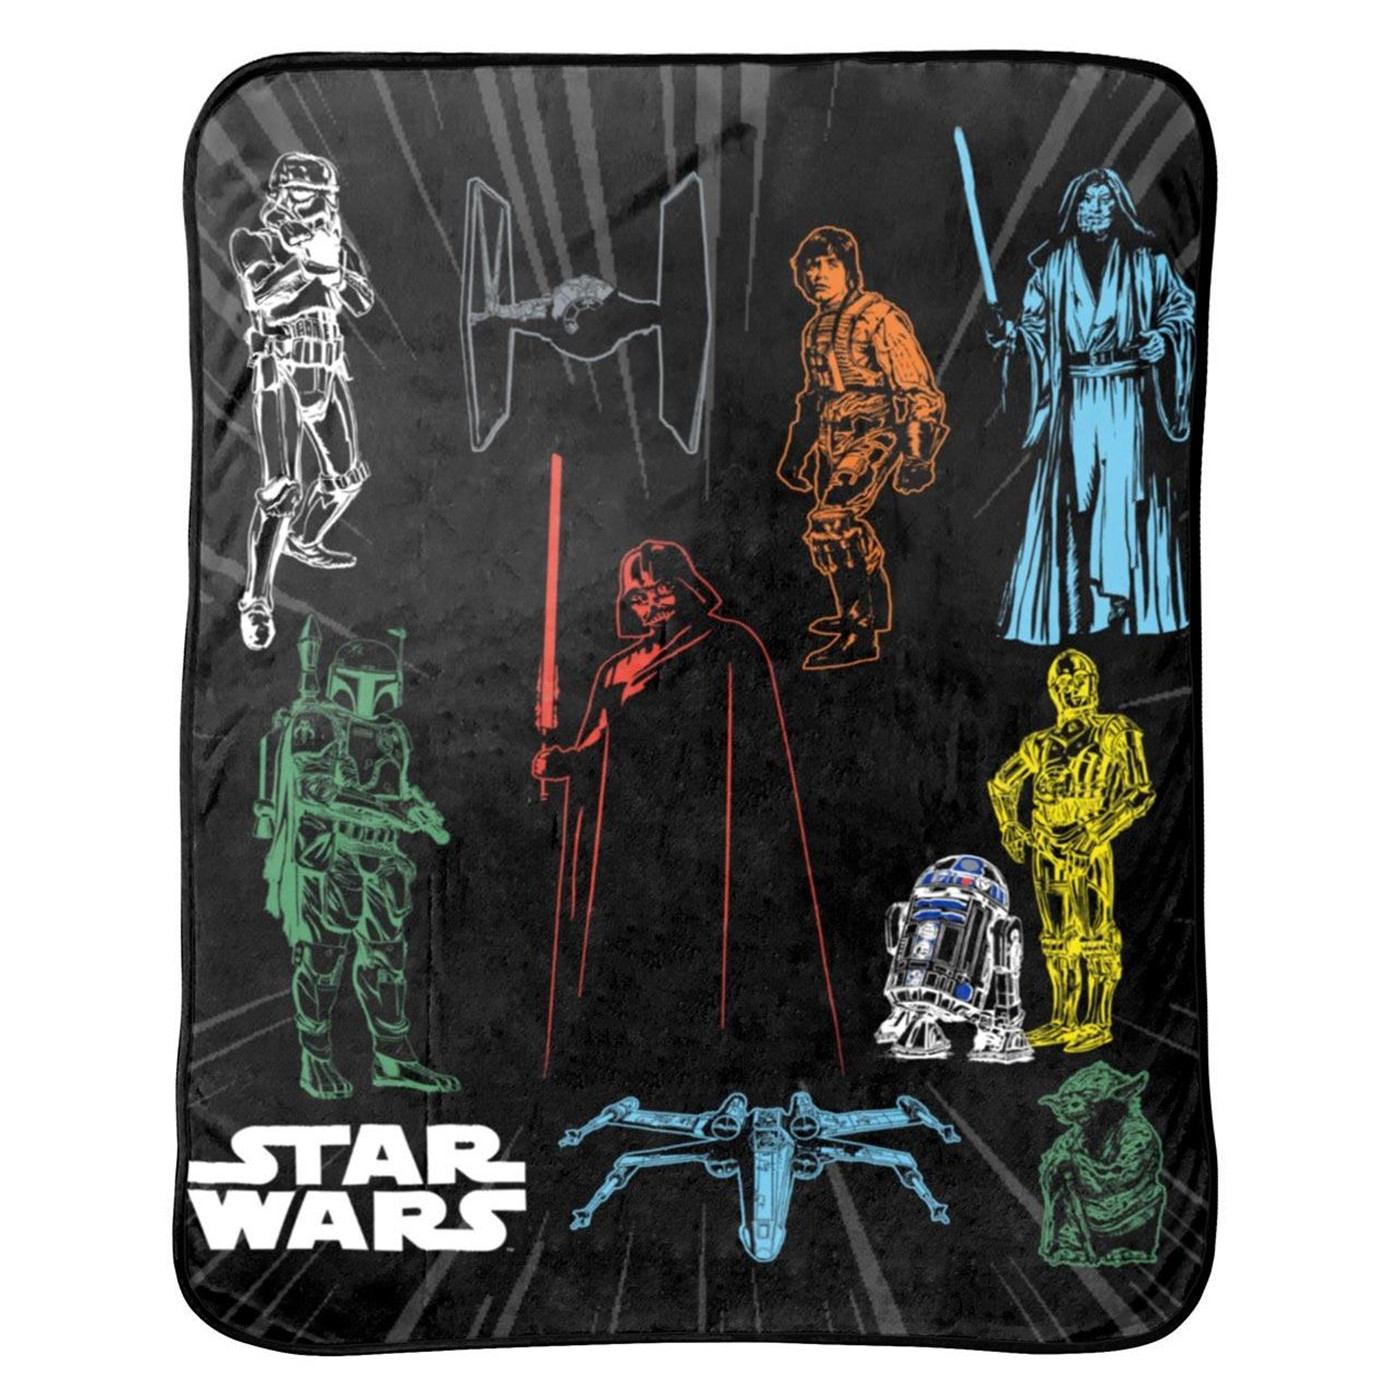 Star Wars Classic Characters Throw